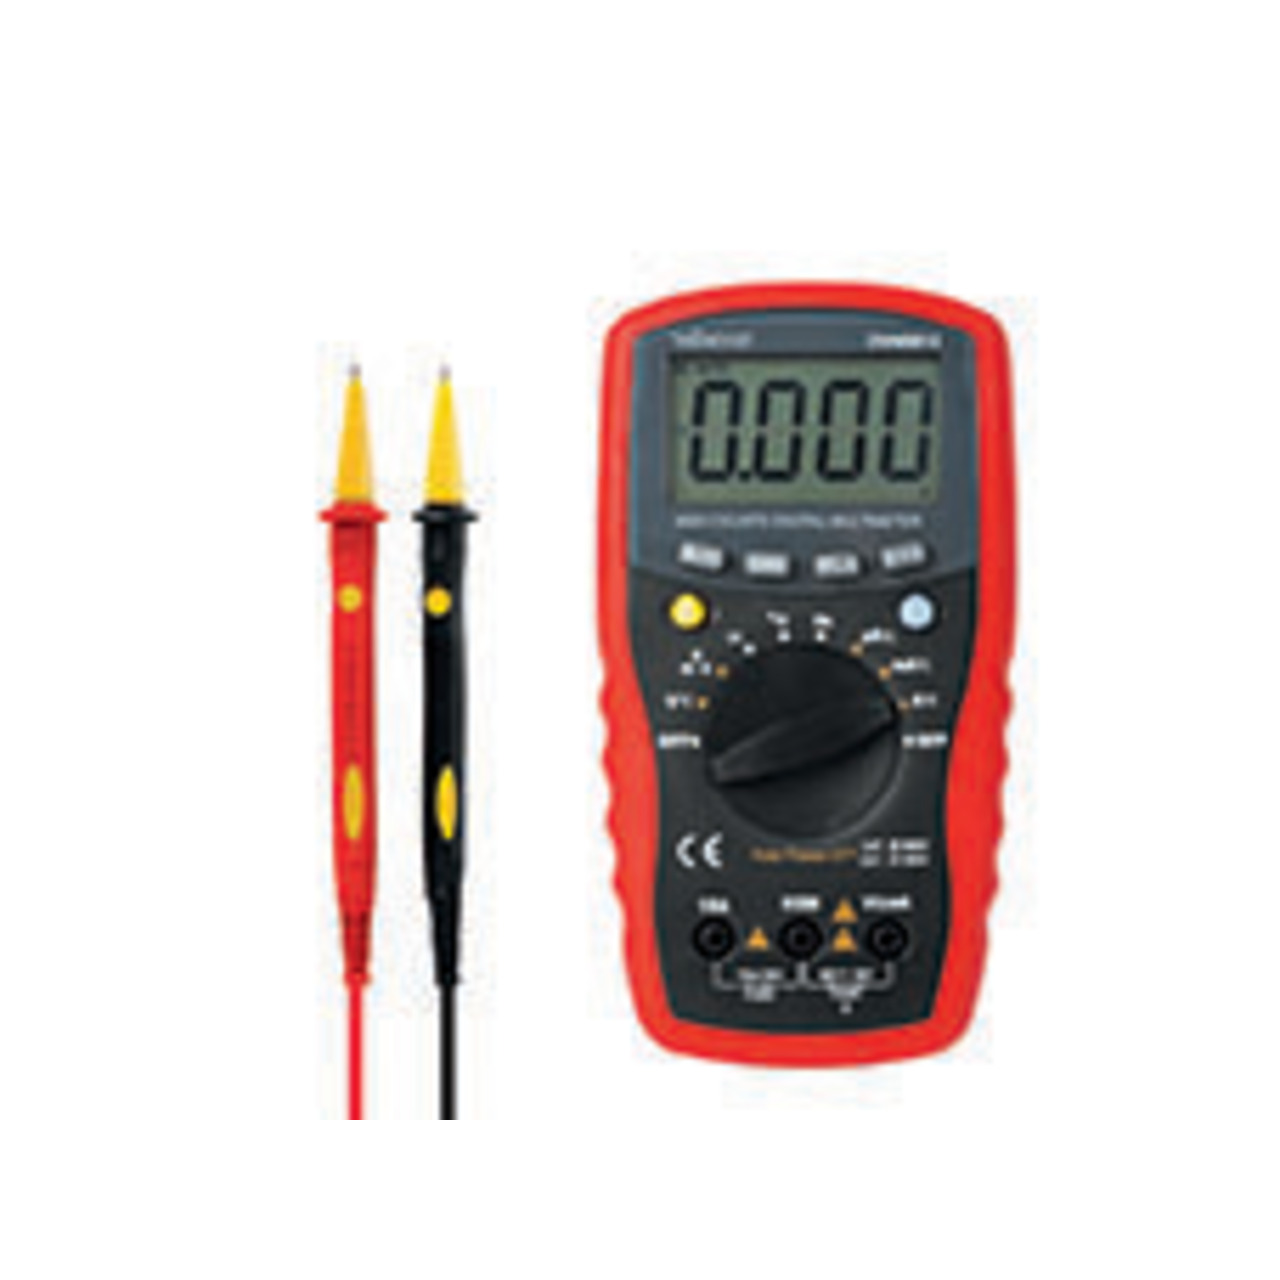 Velleman Digital-Multimeter - CAT III 600 V - CAT IV 300 V - 15 A